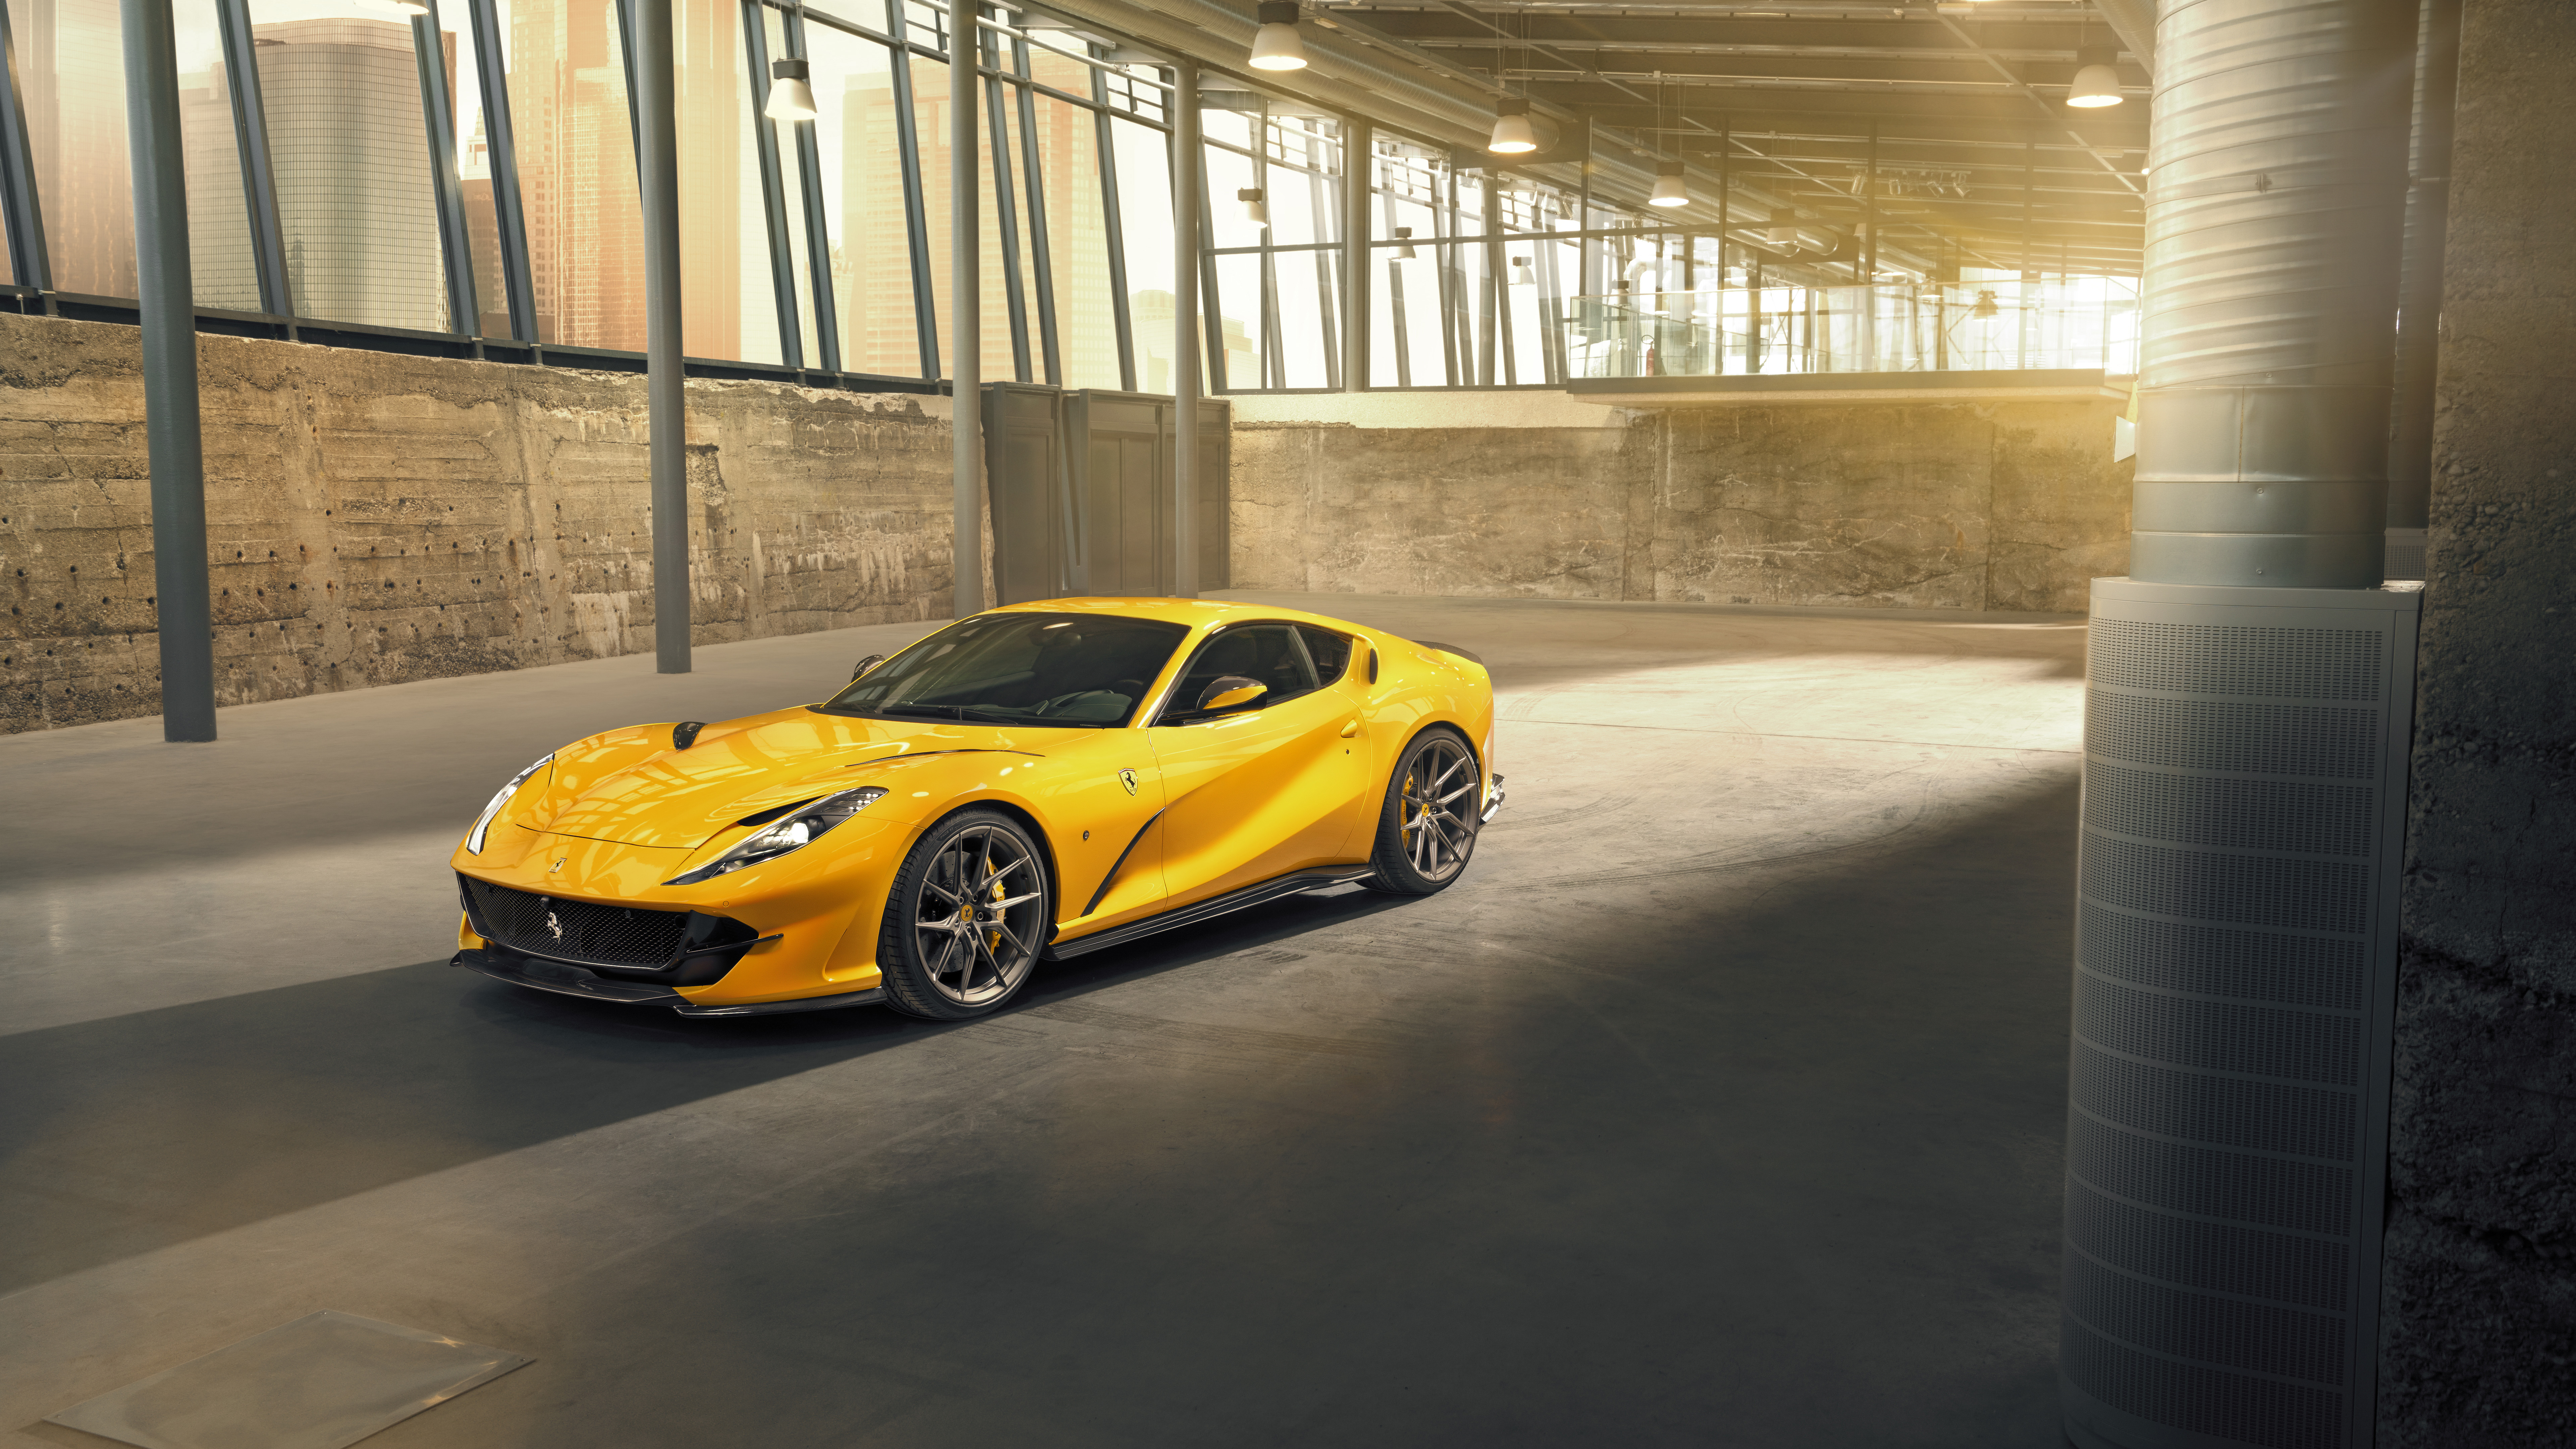 Novitec Ferrari 812 Superfast 2019 4k 8k 4 Wallpaper Hd Car Wallpapers Id 11927